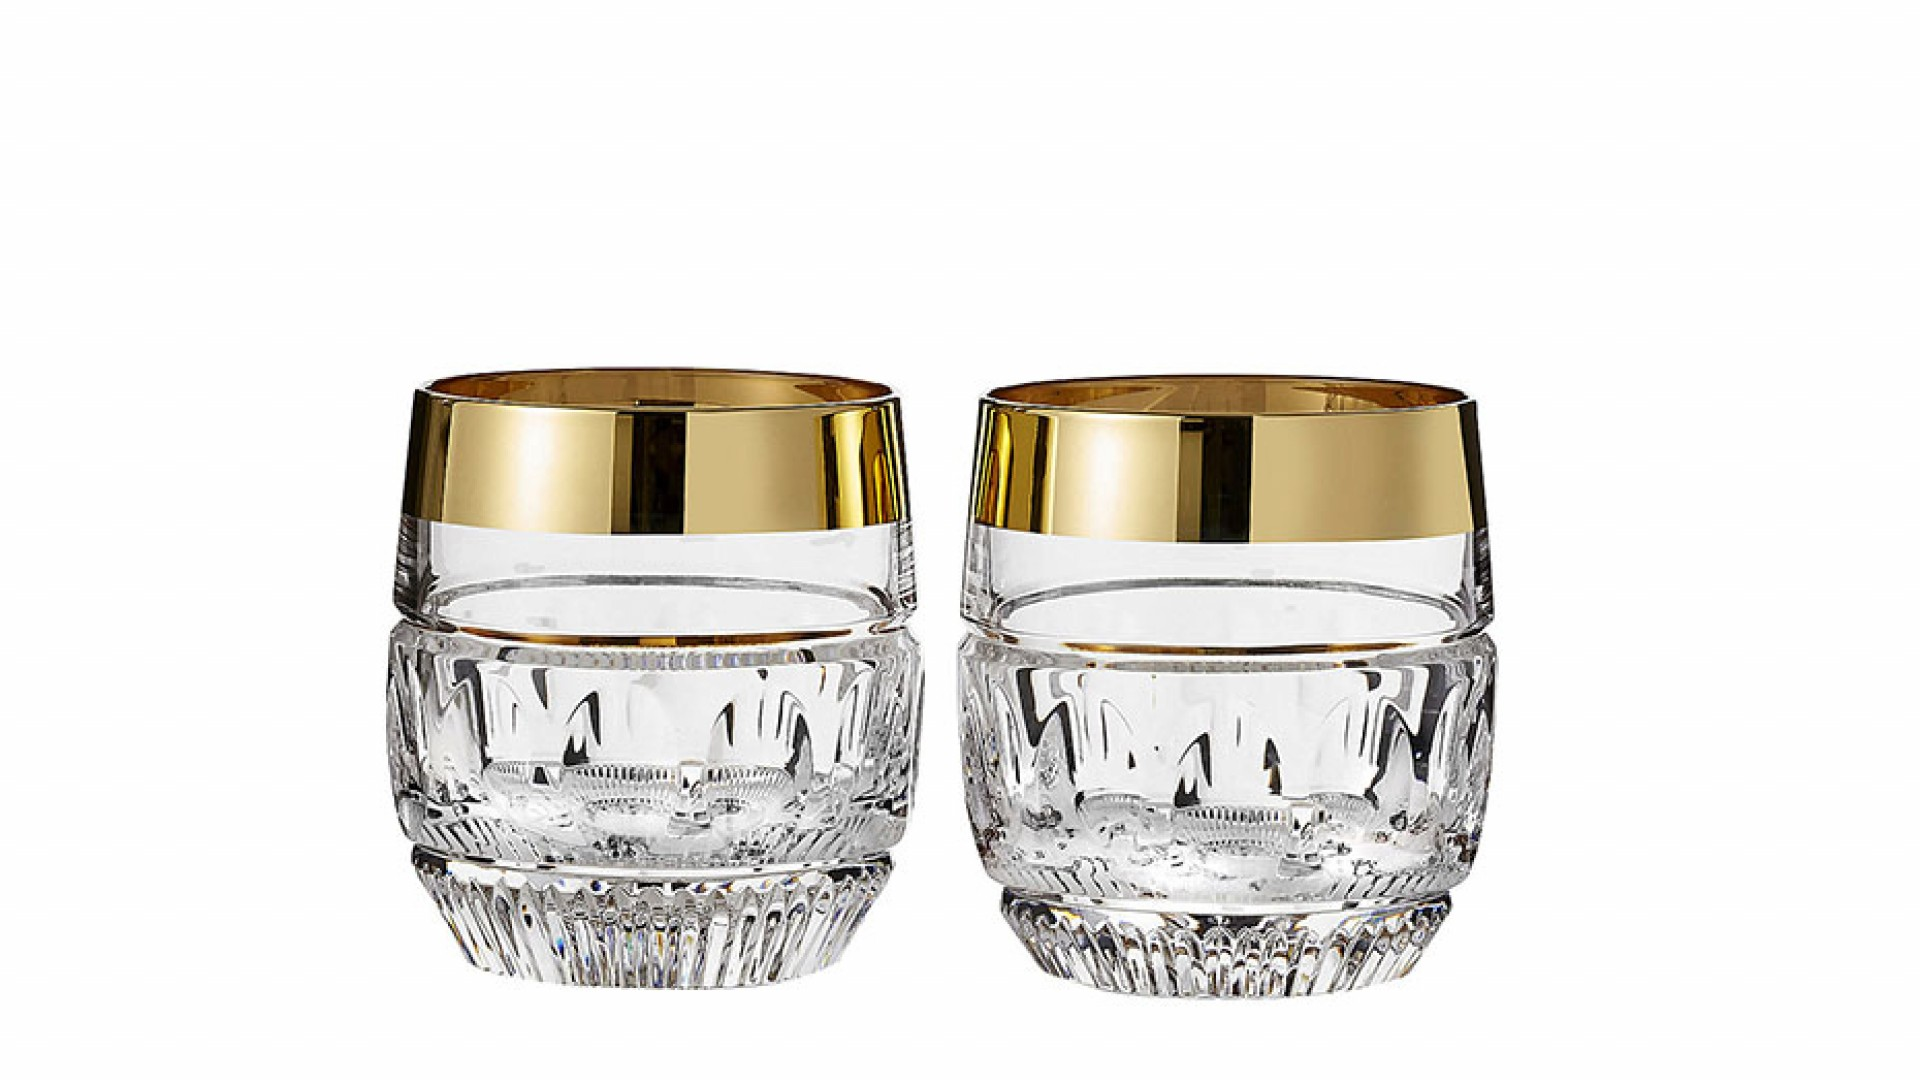 "WATERFORD CRYSTAL GLASSES, £125, <a href=""http://www.selfridges.com/en/waterford-set-of-two-mixology-olson-dof-glasses_538-10010-40002666/"" target=""_blank"">SELFRIDGES.COM</a>"